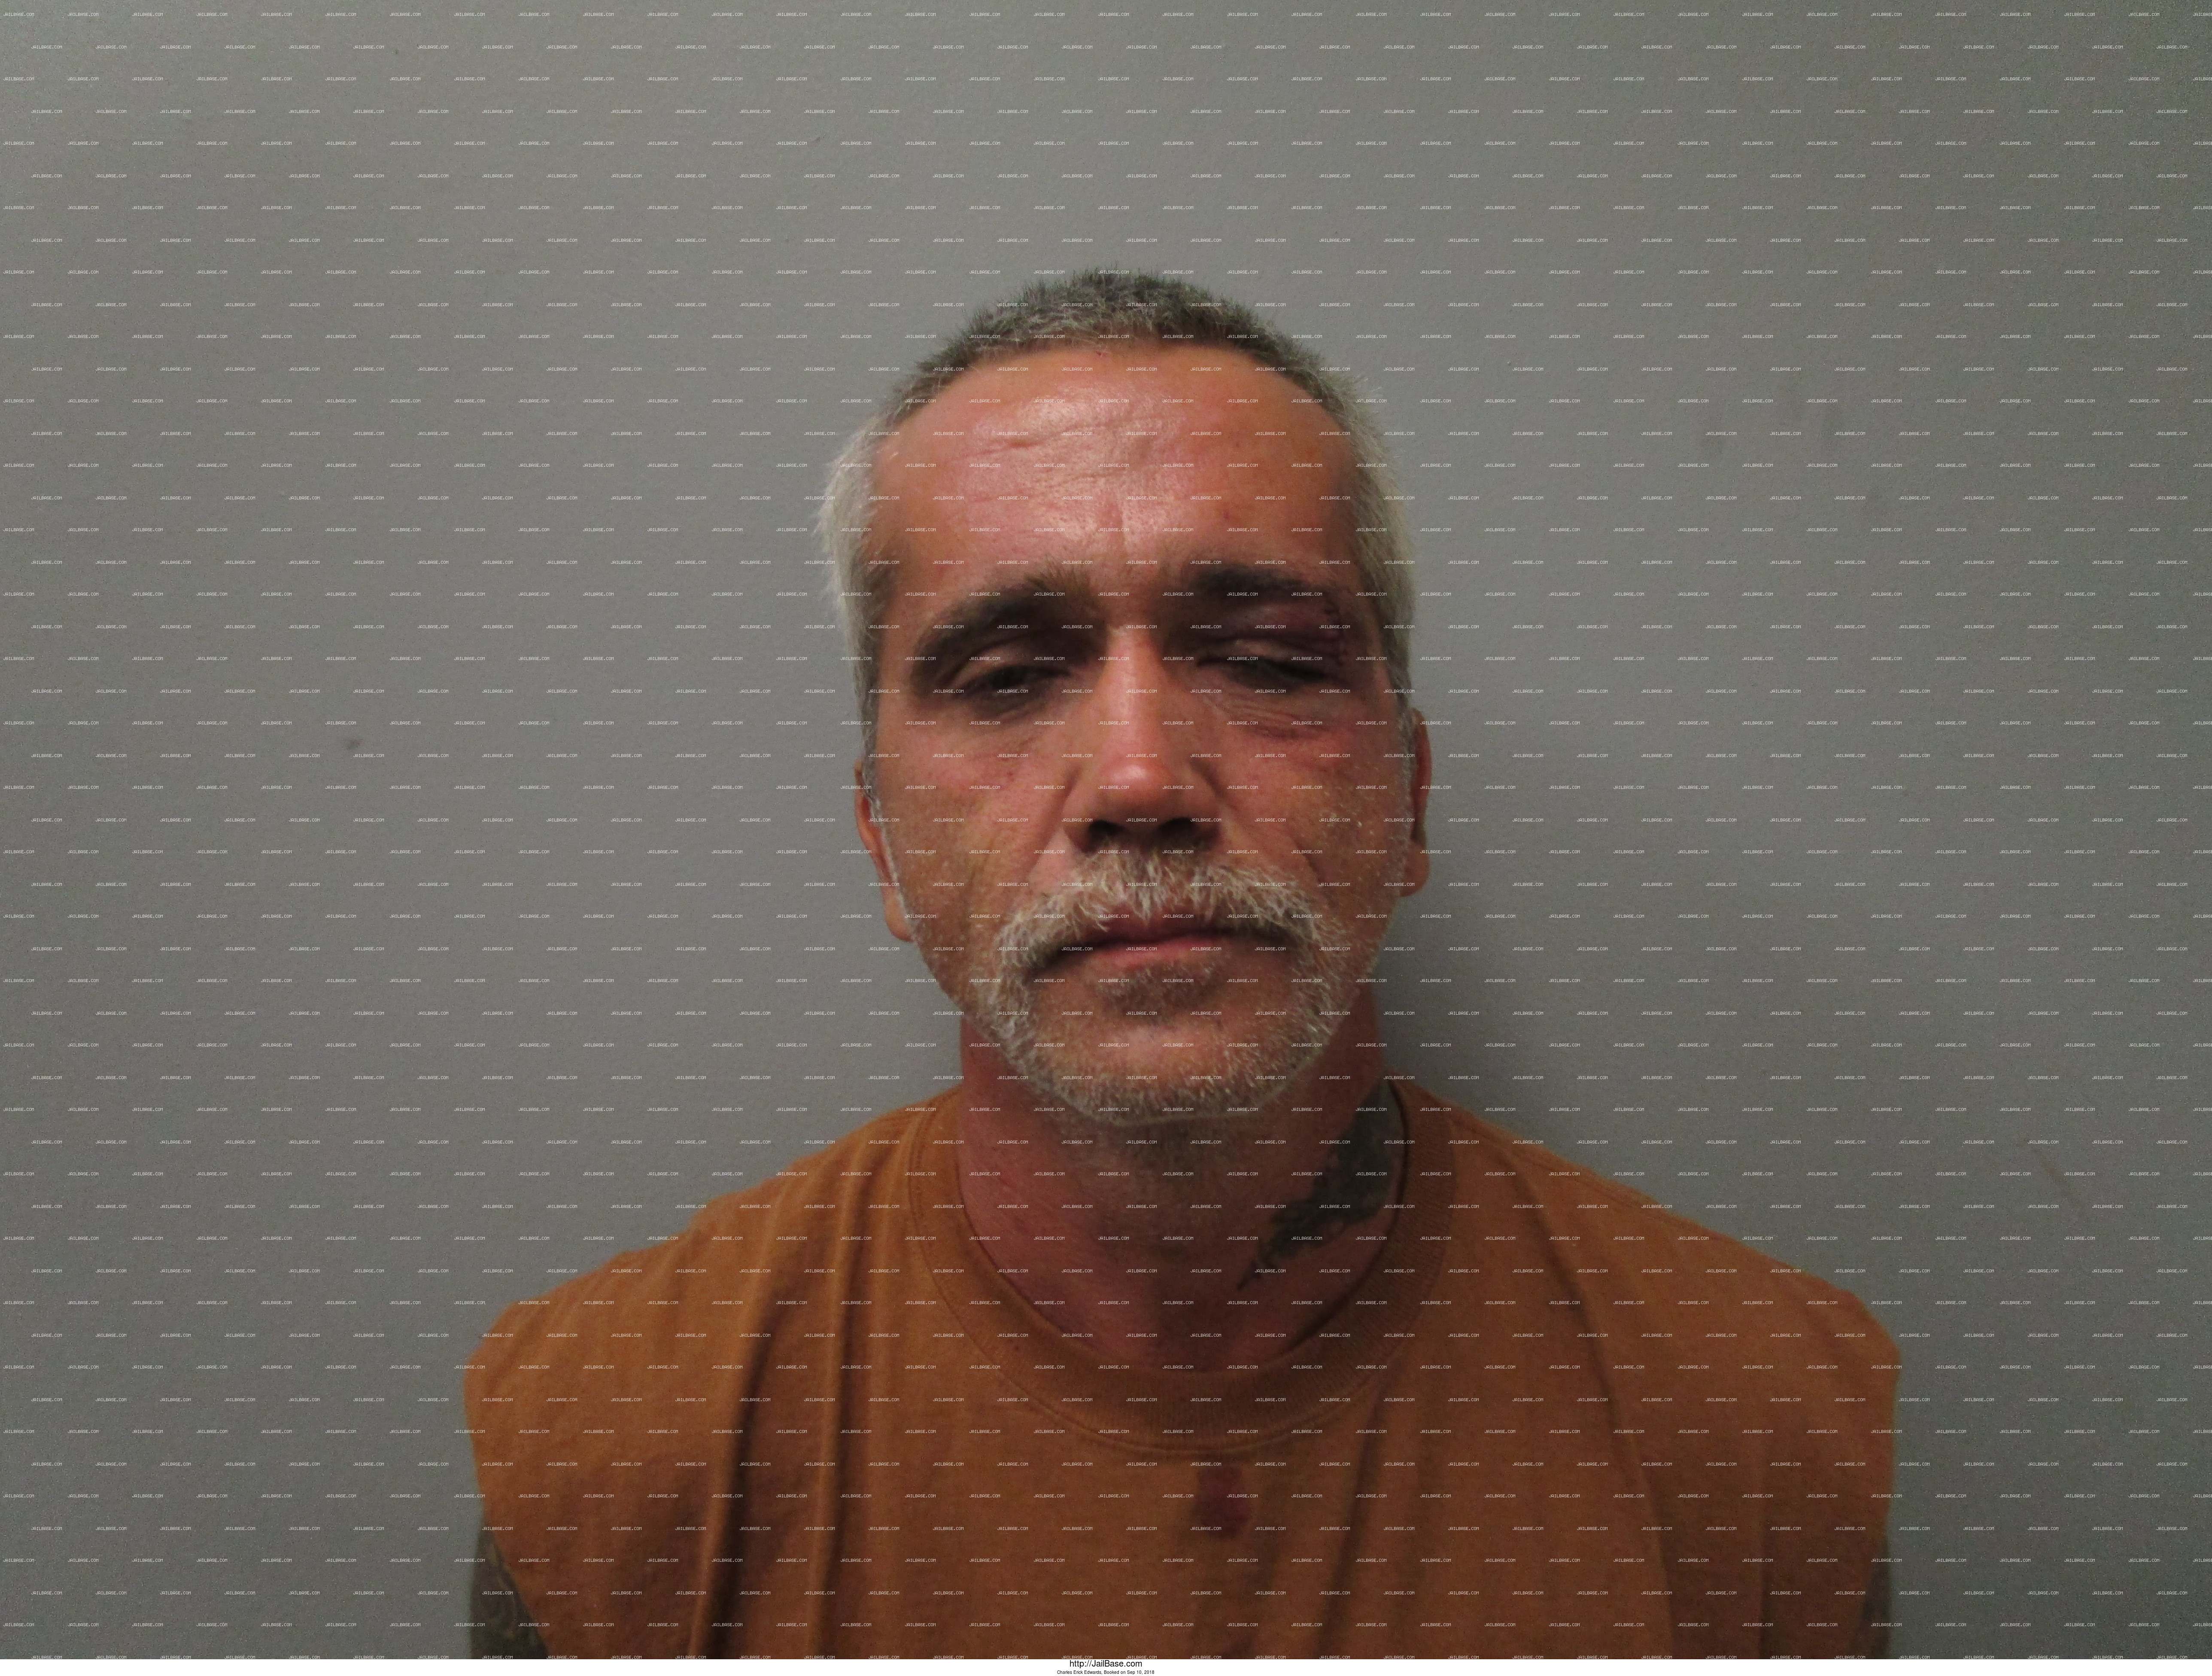 CHARLES ERICK EDWARDS mugshot picture